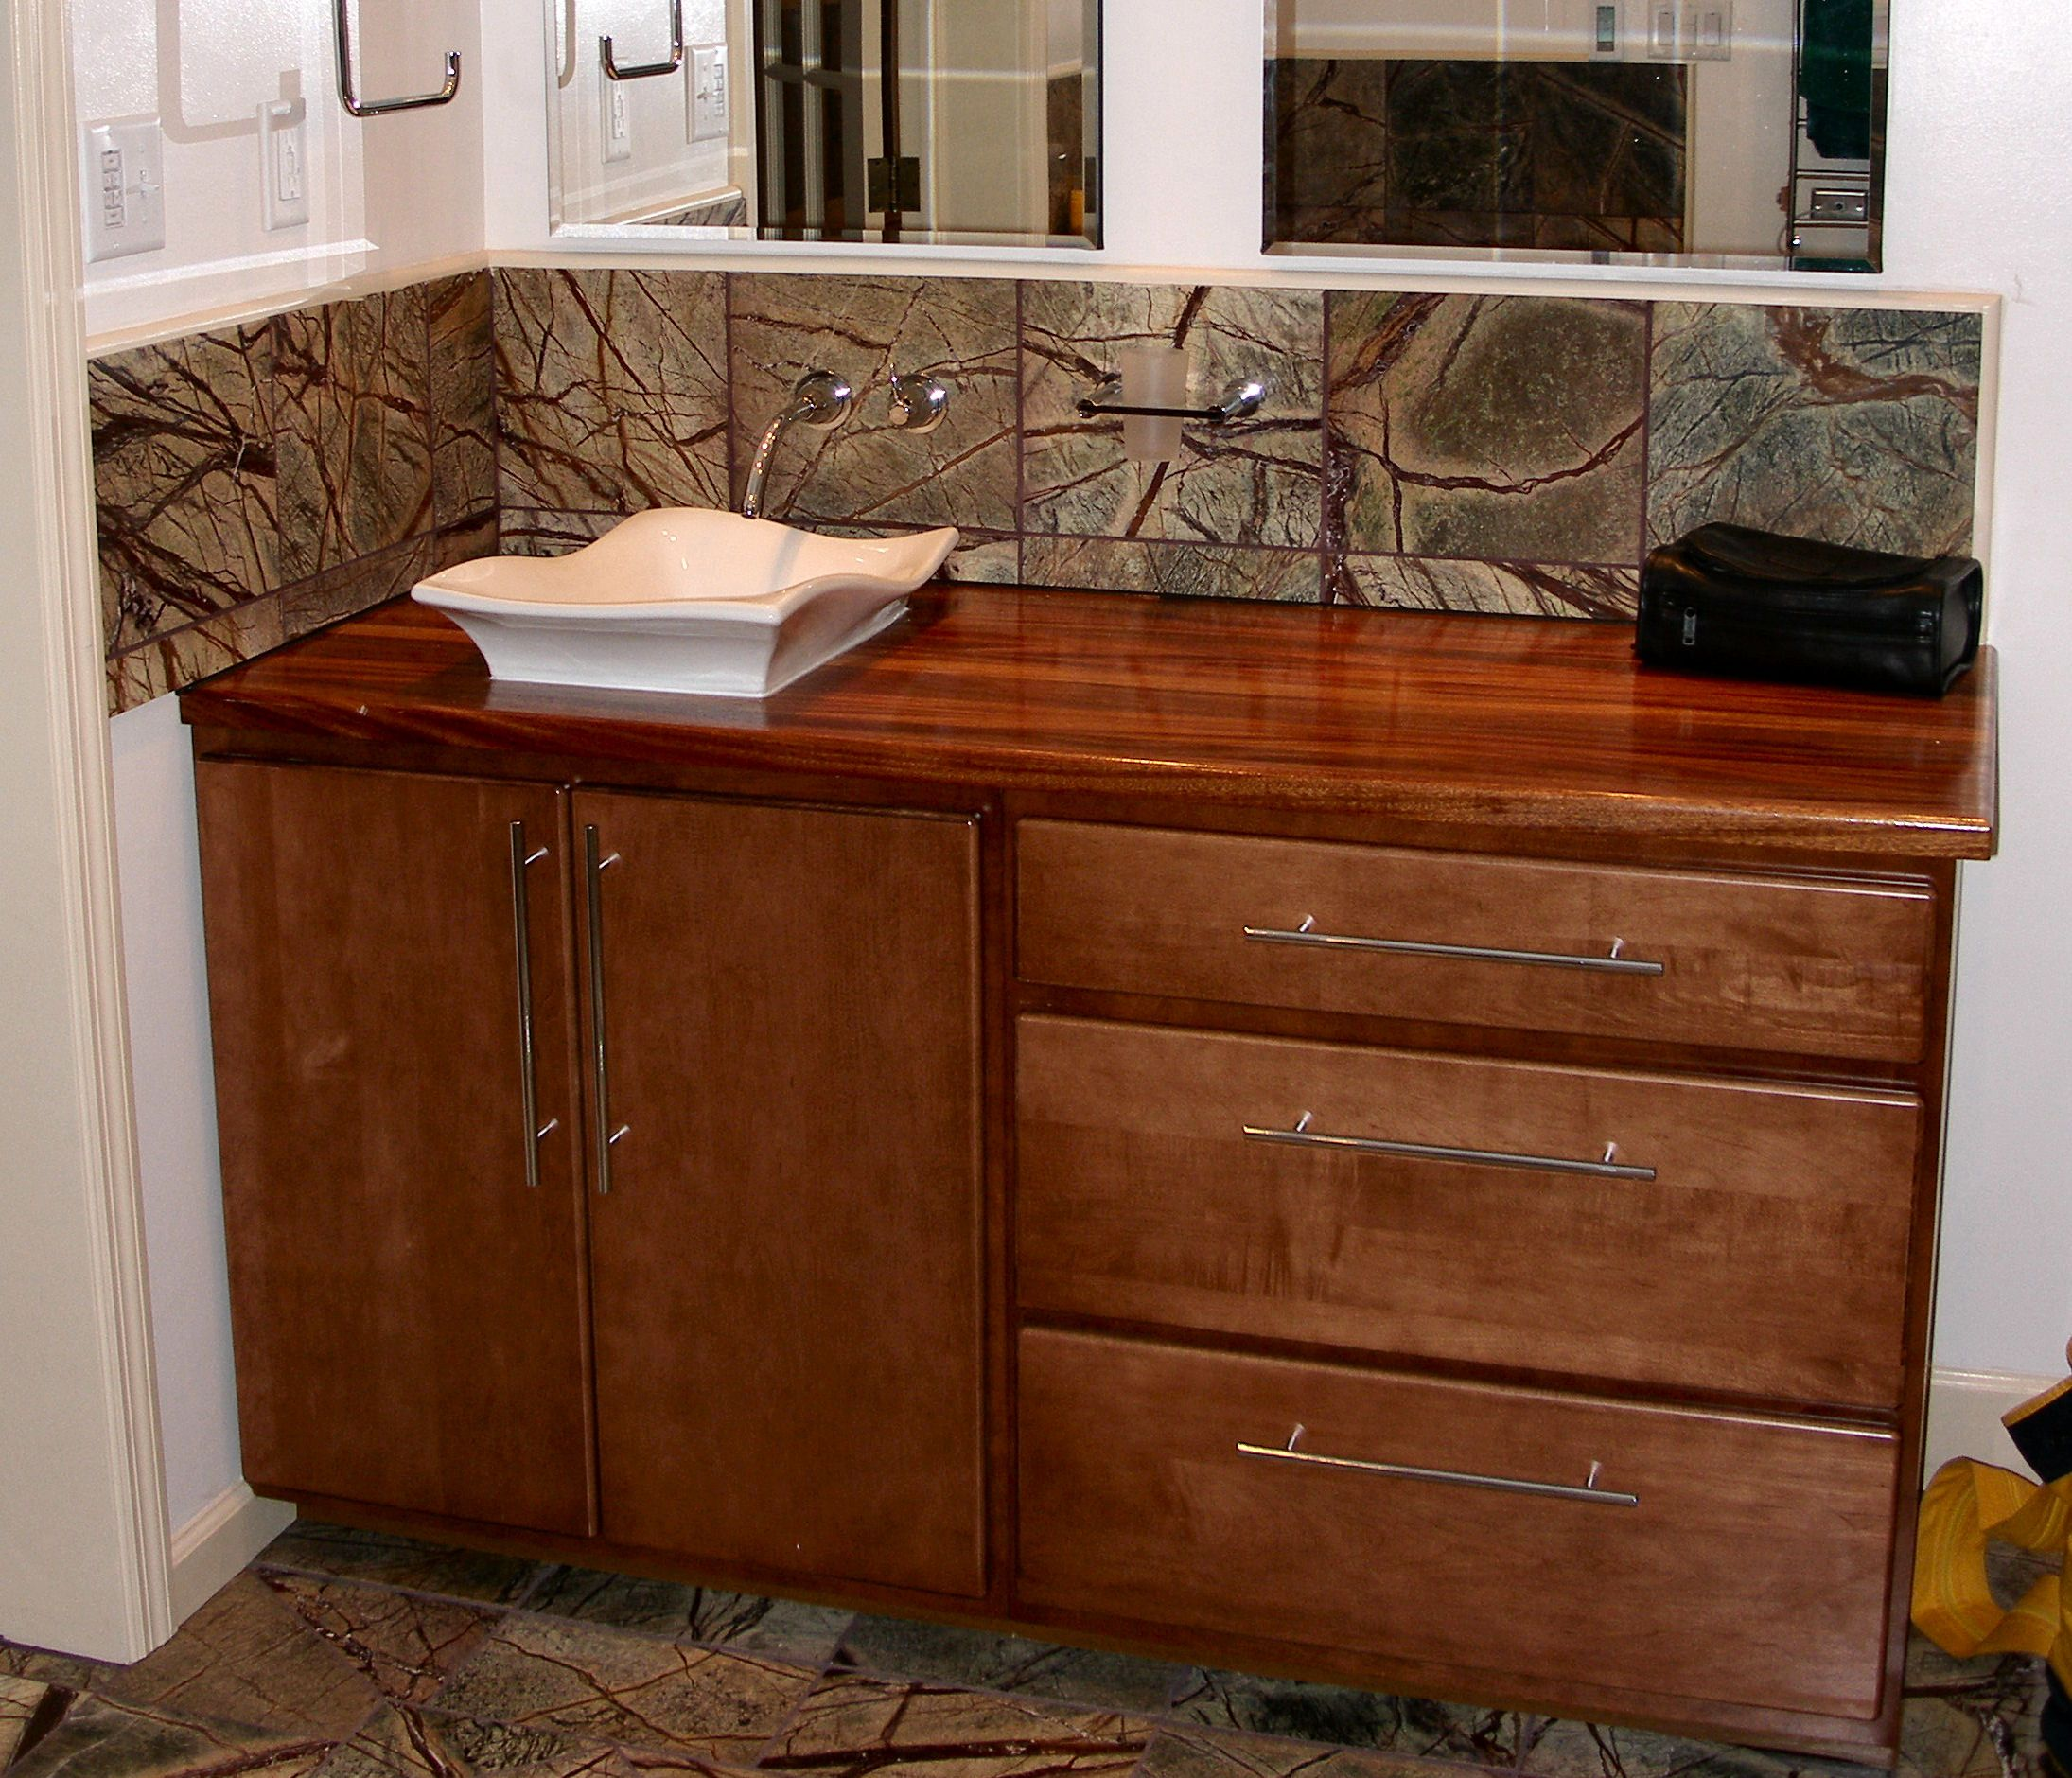 Custom Bathroom Vanity Tops With Sinks sink cutouts in custom wood countertops